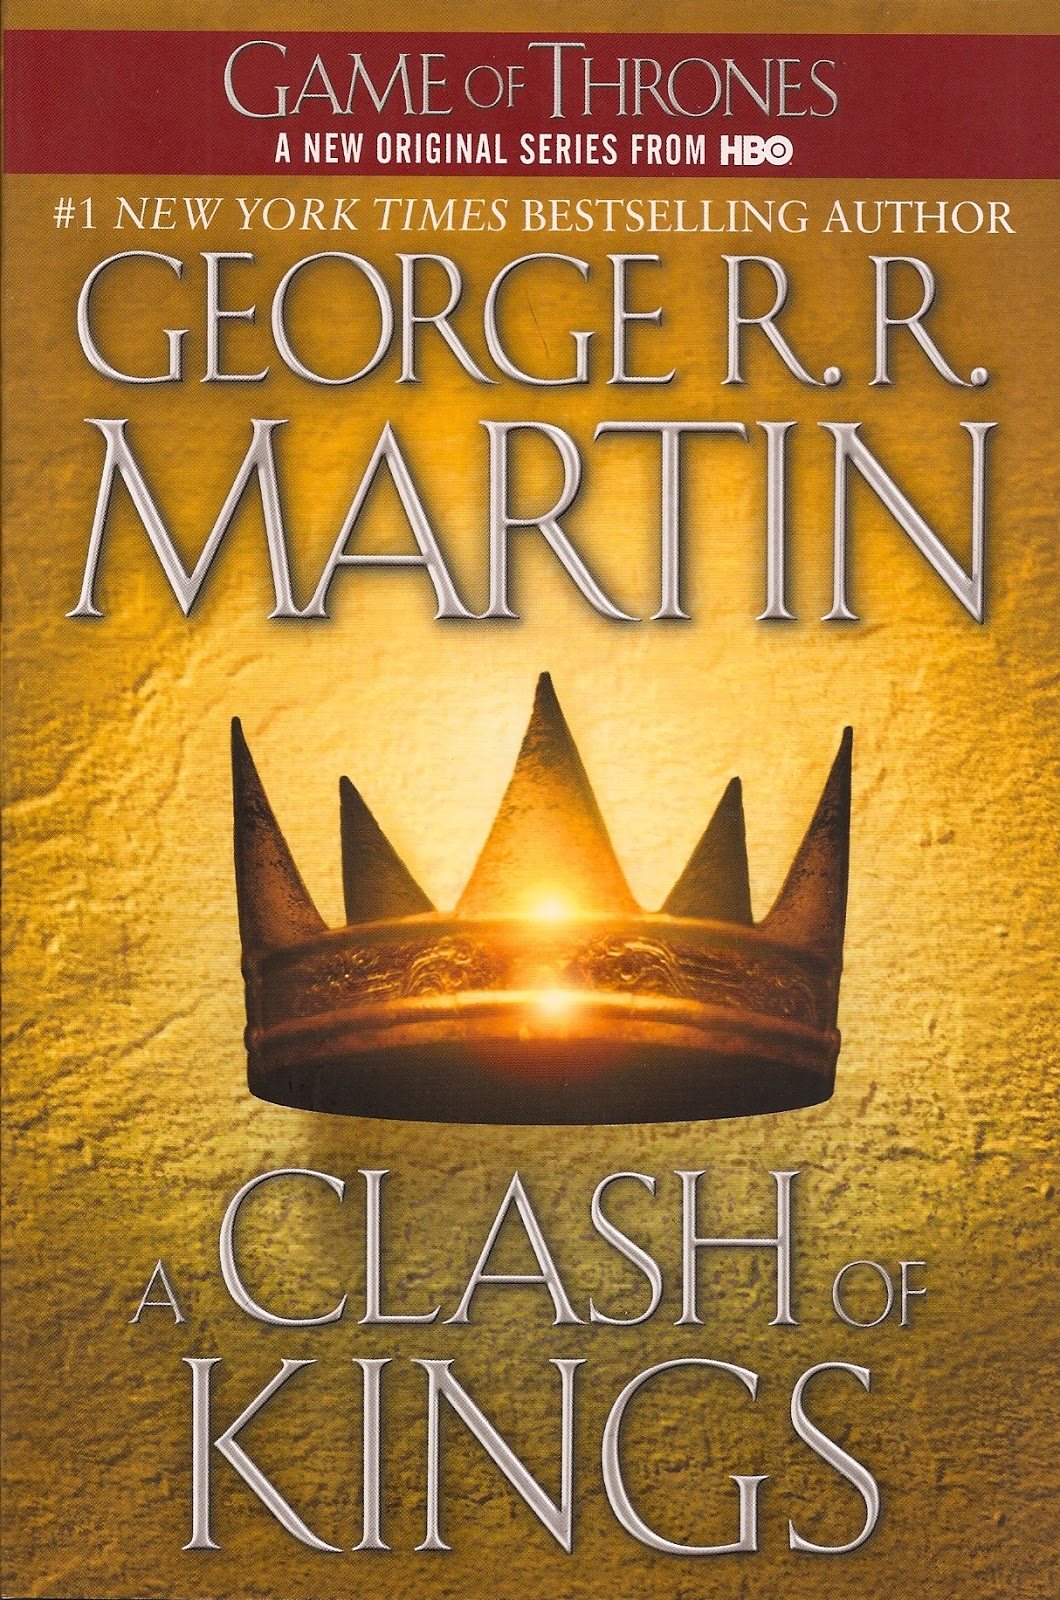 http://nothingbutn9erz.blogspot.co.at/2014/02/a-clash-of-kings-game-of-thrones-von.html